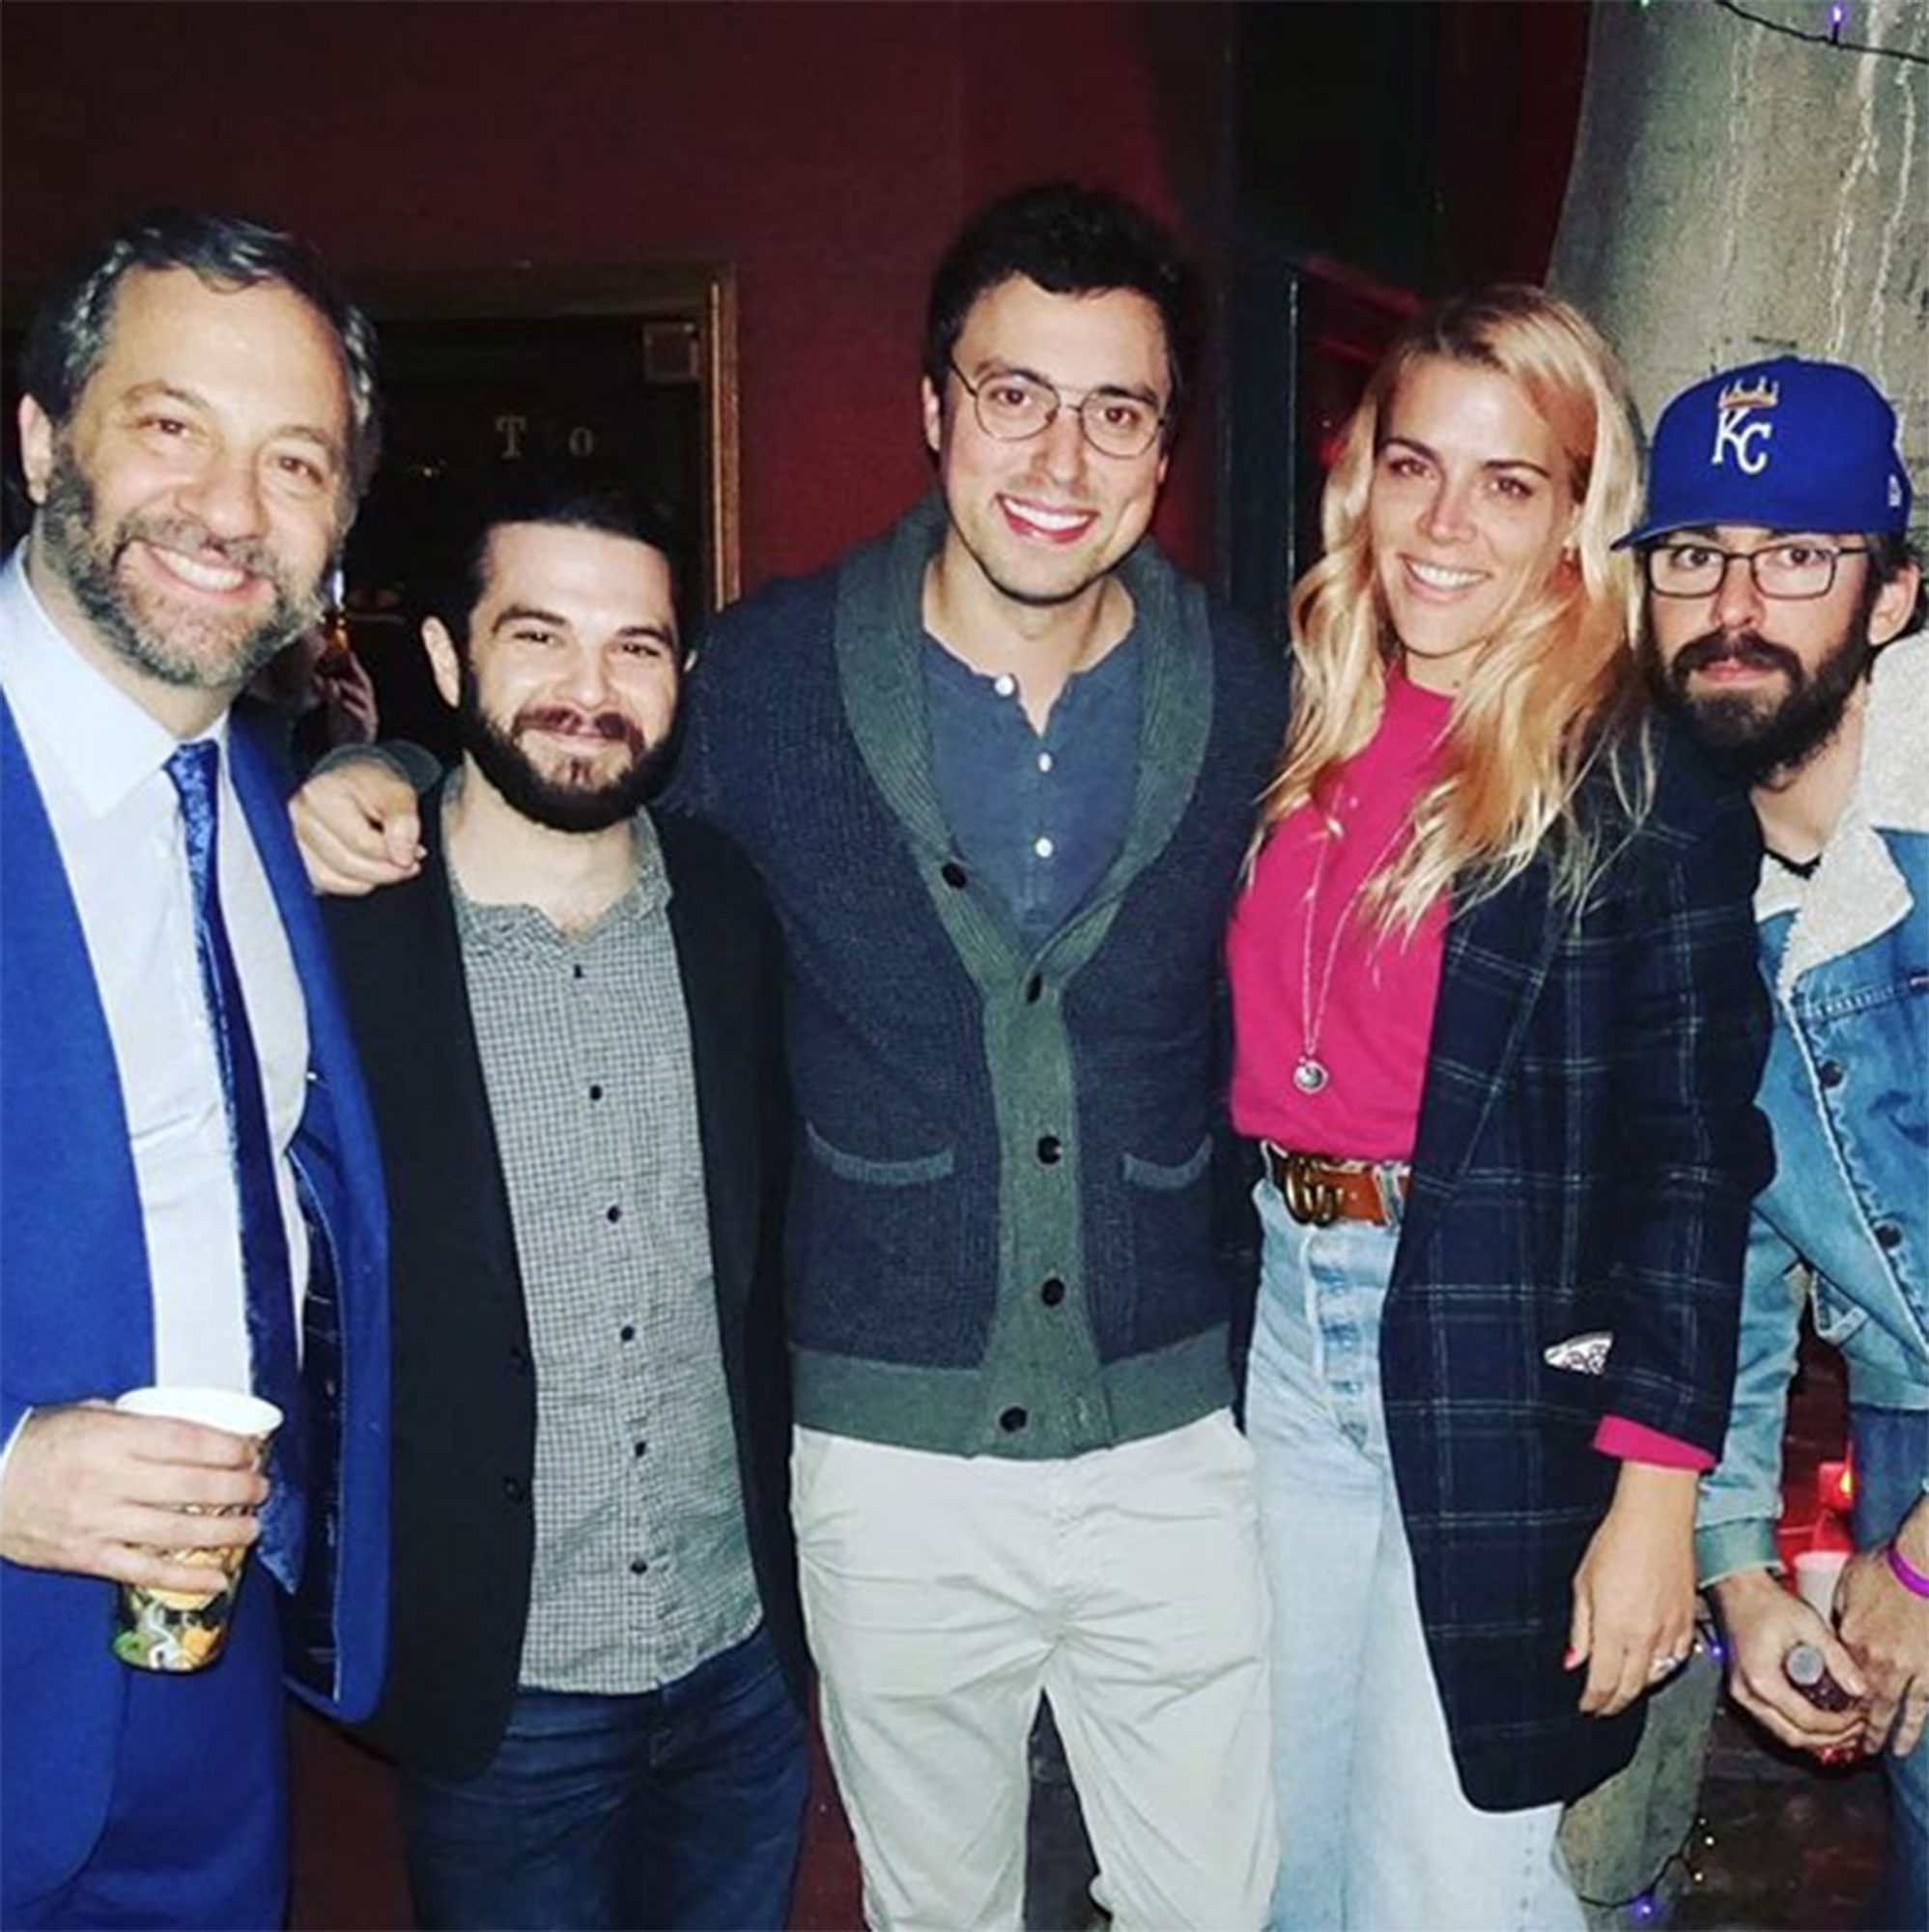 """They're not in Chippewa anymore: It's aFreaks and Geeks reunion in Los Angeles!Busy Philipps shared a group photo of her former cast members on Instagram one night after they all celebrated Freaks and Geeks'executive producer Judd Apatow's birthday.                             """"4 geeks and a freak. HAPPY BIRTHDAY JUDD! THANK YOU for giving us all the best job of all time when we were too young & dumb to know how good we had it,"""" Philipps captioned the picture of her with Apatow,John Francis Daley, Samm Levine and Martin Starr."""